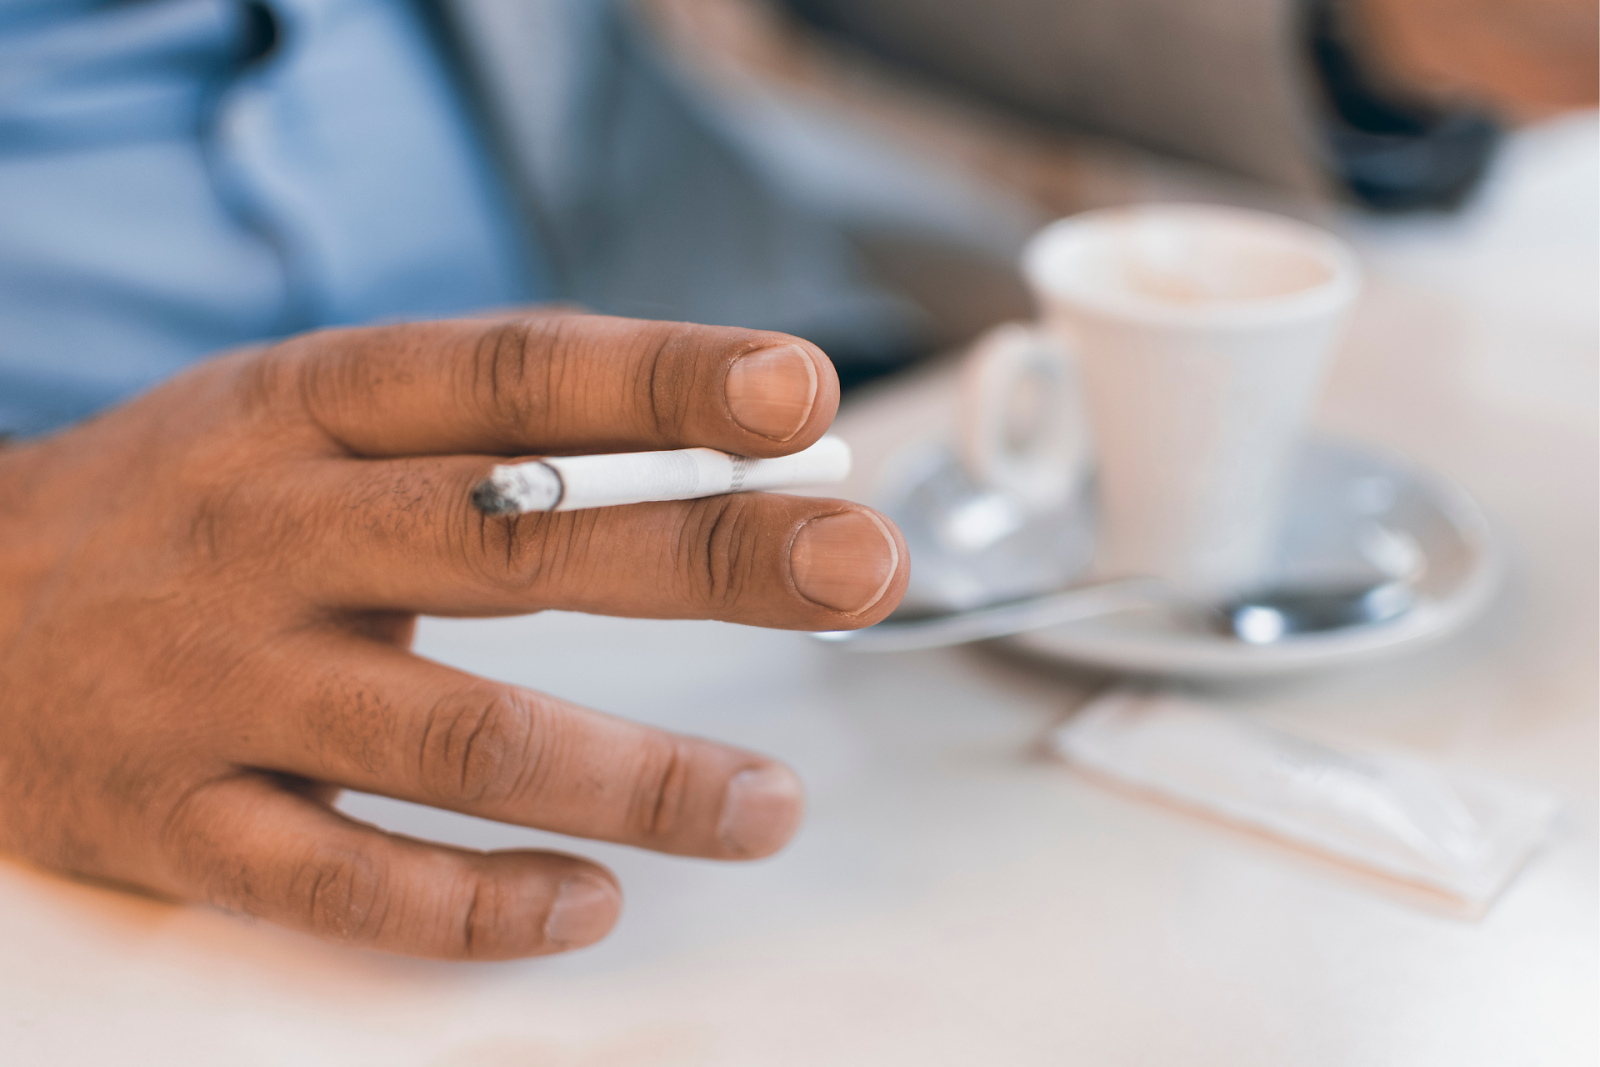 Cigarette in Male Hand With a Cup of Coffee